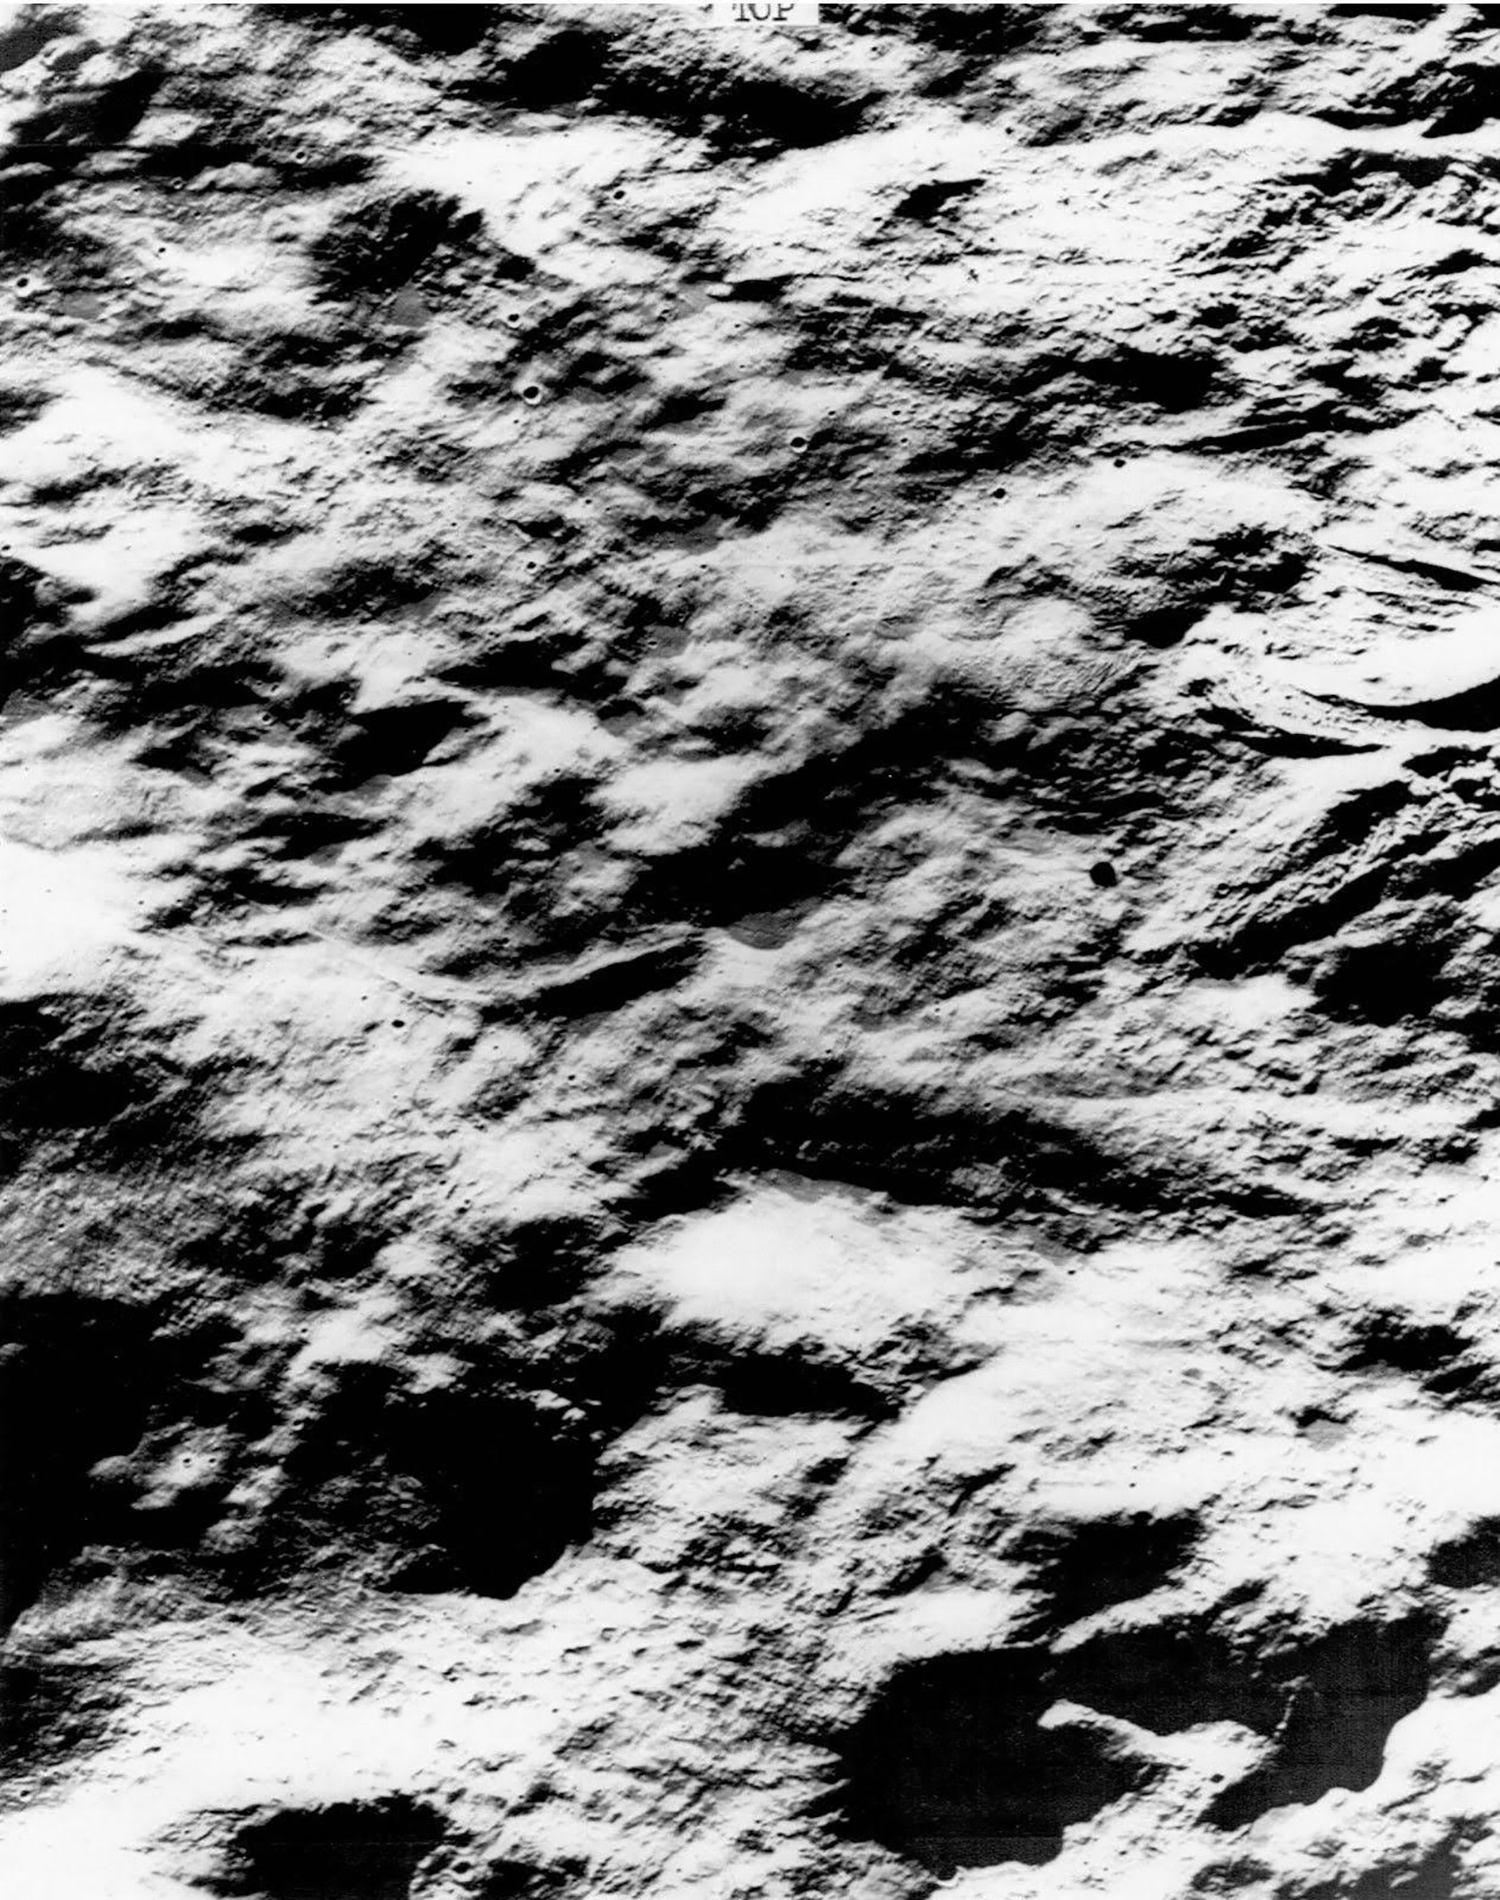 NASA (USA), Associated Wire Press Photo: Target for Surveyor 7: Mountainous area around the crater Tycho, one of the roughest spots on the moon (taken by the Lunar Orbiter V spacecraft). August 1967. Collection of Justine Varga, Sydney.